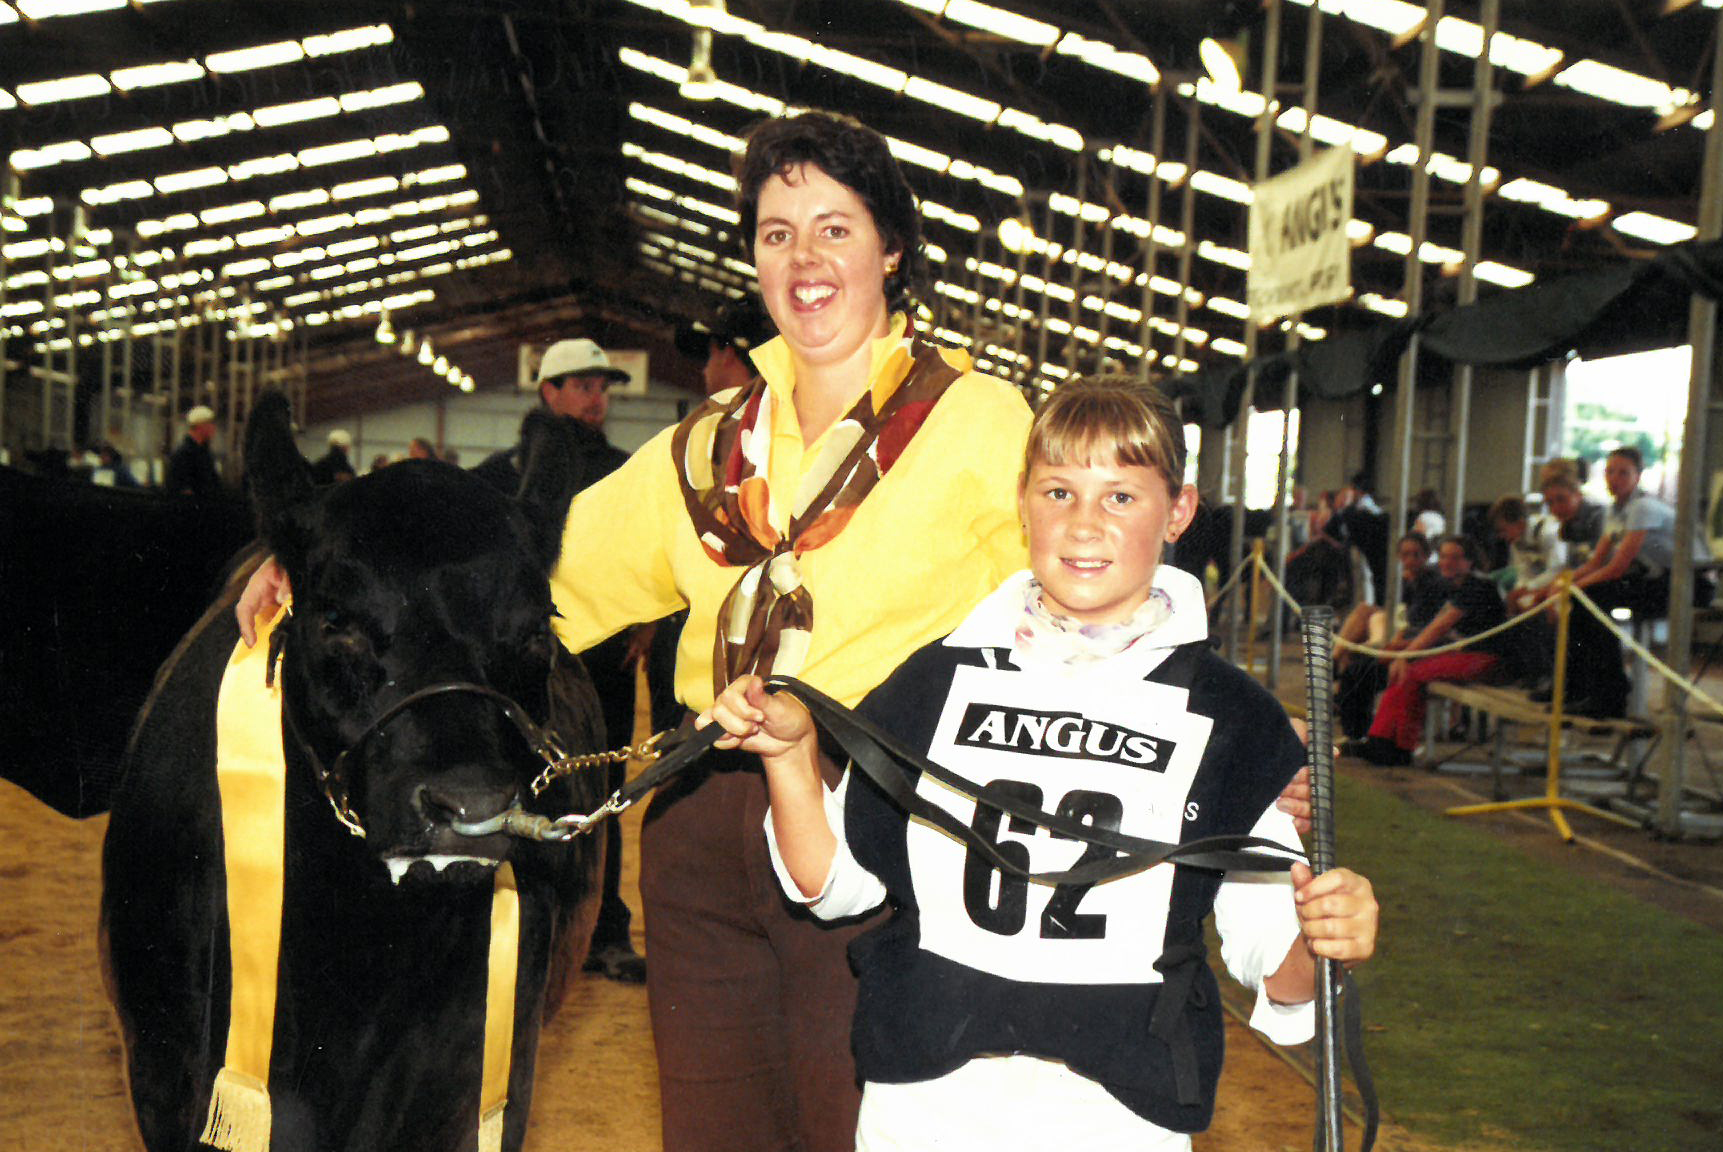 Noeleen Branson with Trinity Edwards (nee Golding) at the 2001 Angus Youth Roundup in Hamilton, VIC